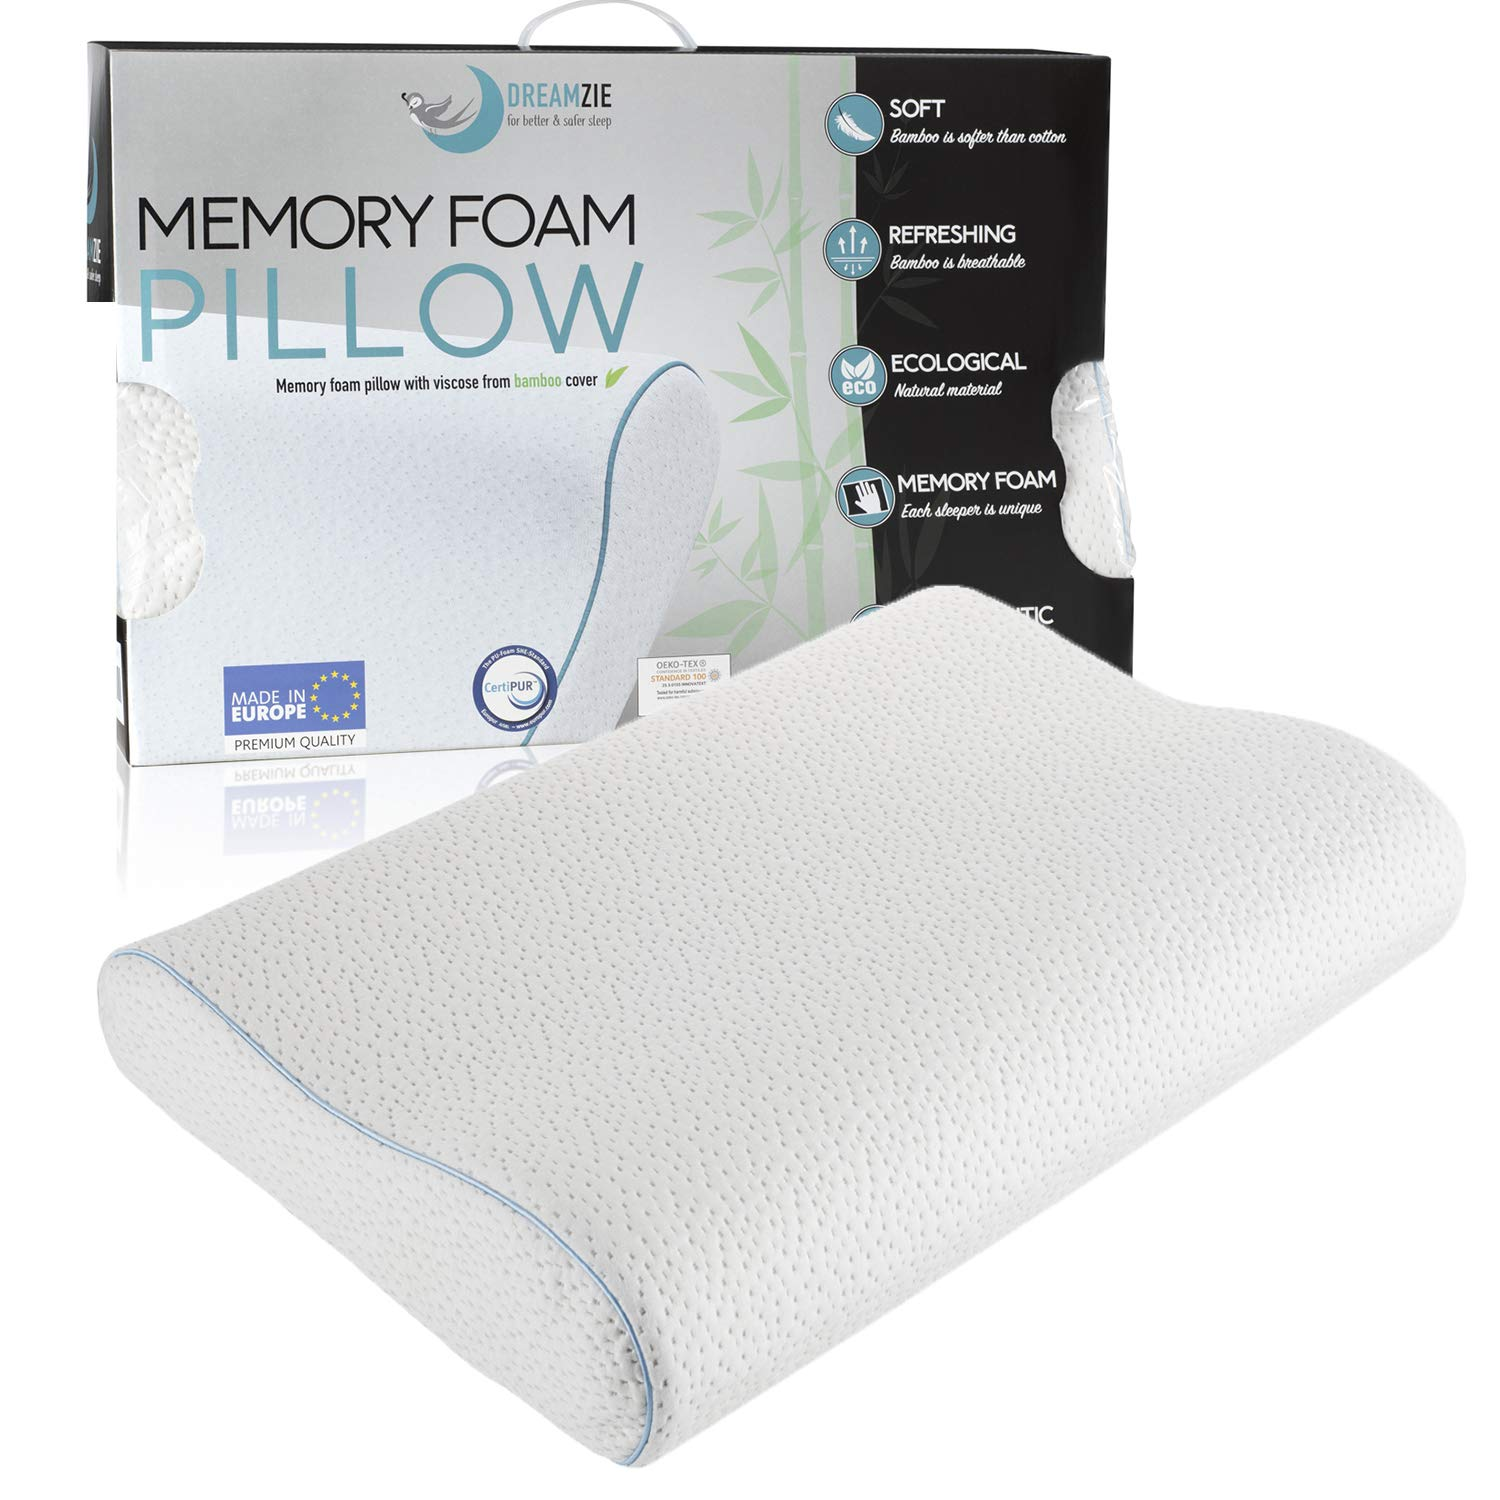 Dreamzie Ergonomic Memory Foam and Orthopaedic Pillow (60 x 40 cm) OEKO-TEX and Certipur Certified - Neck Pillow that Provides Support and Helps Reduce Neck Pain - Bamboo Fibre Cover BMS International